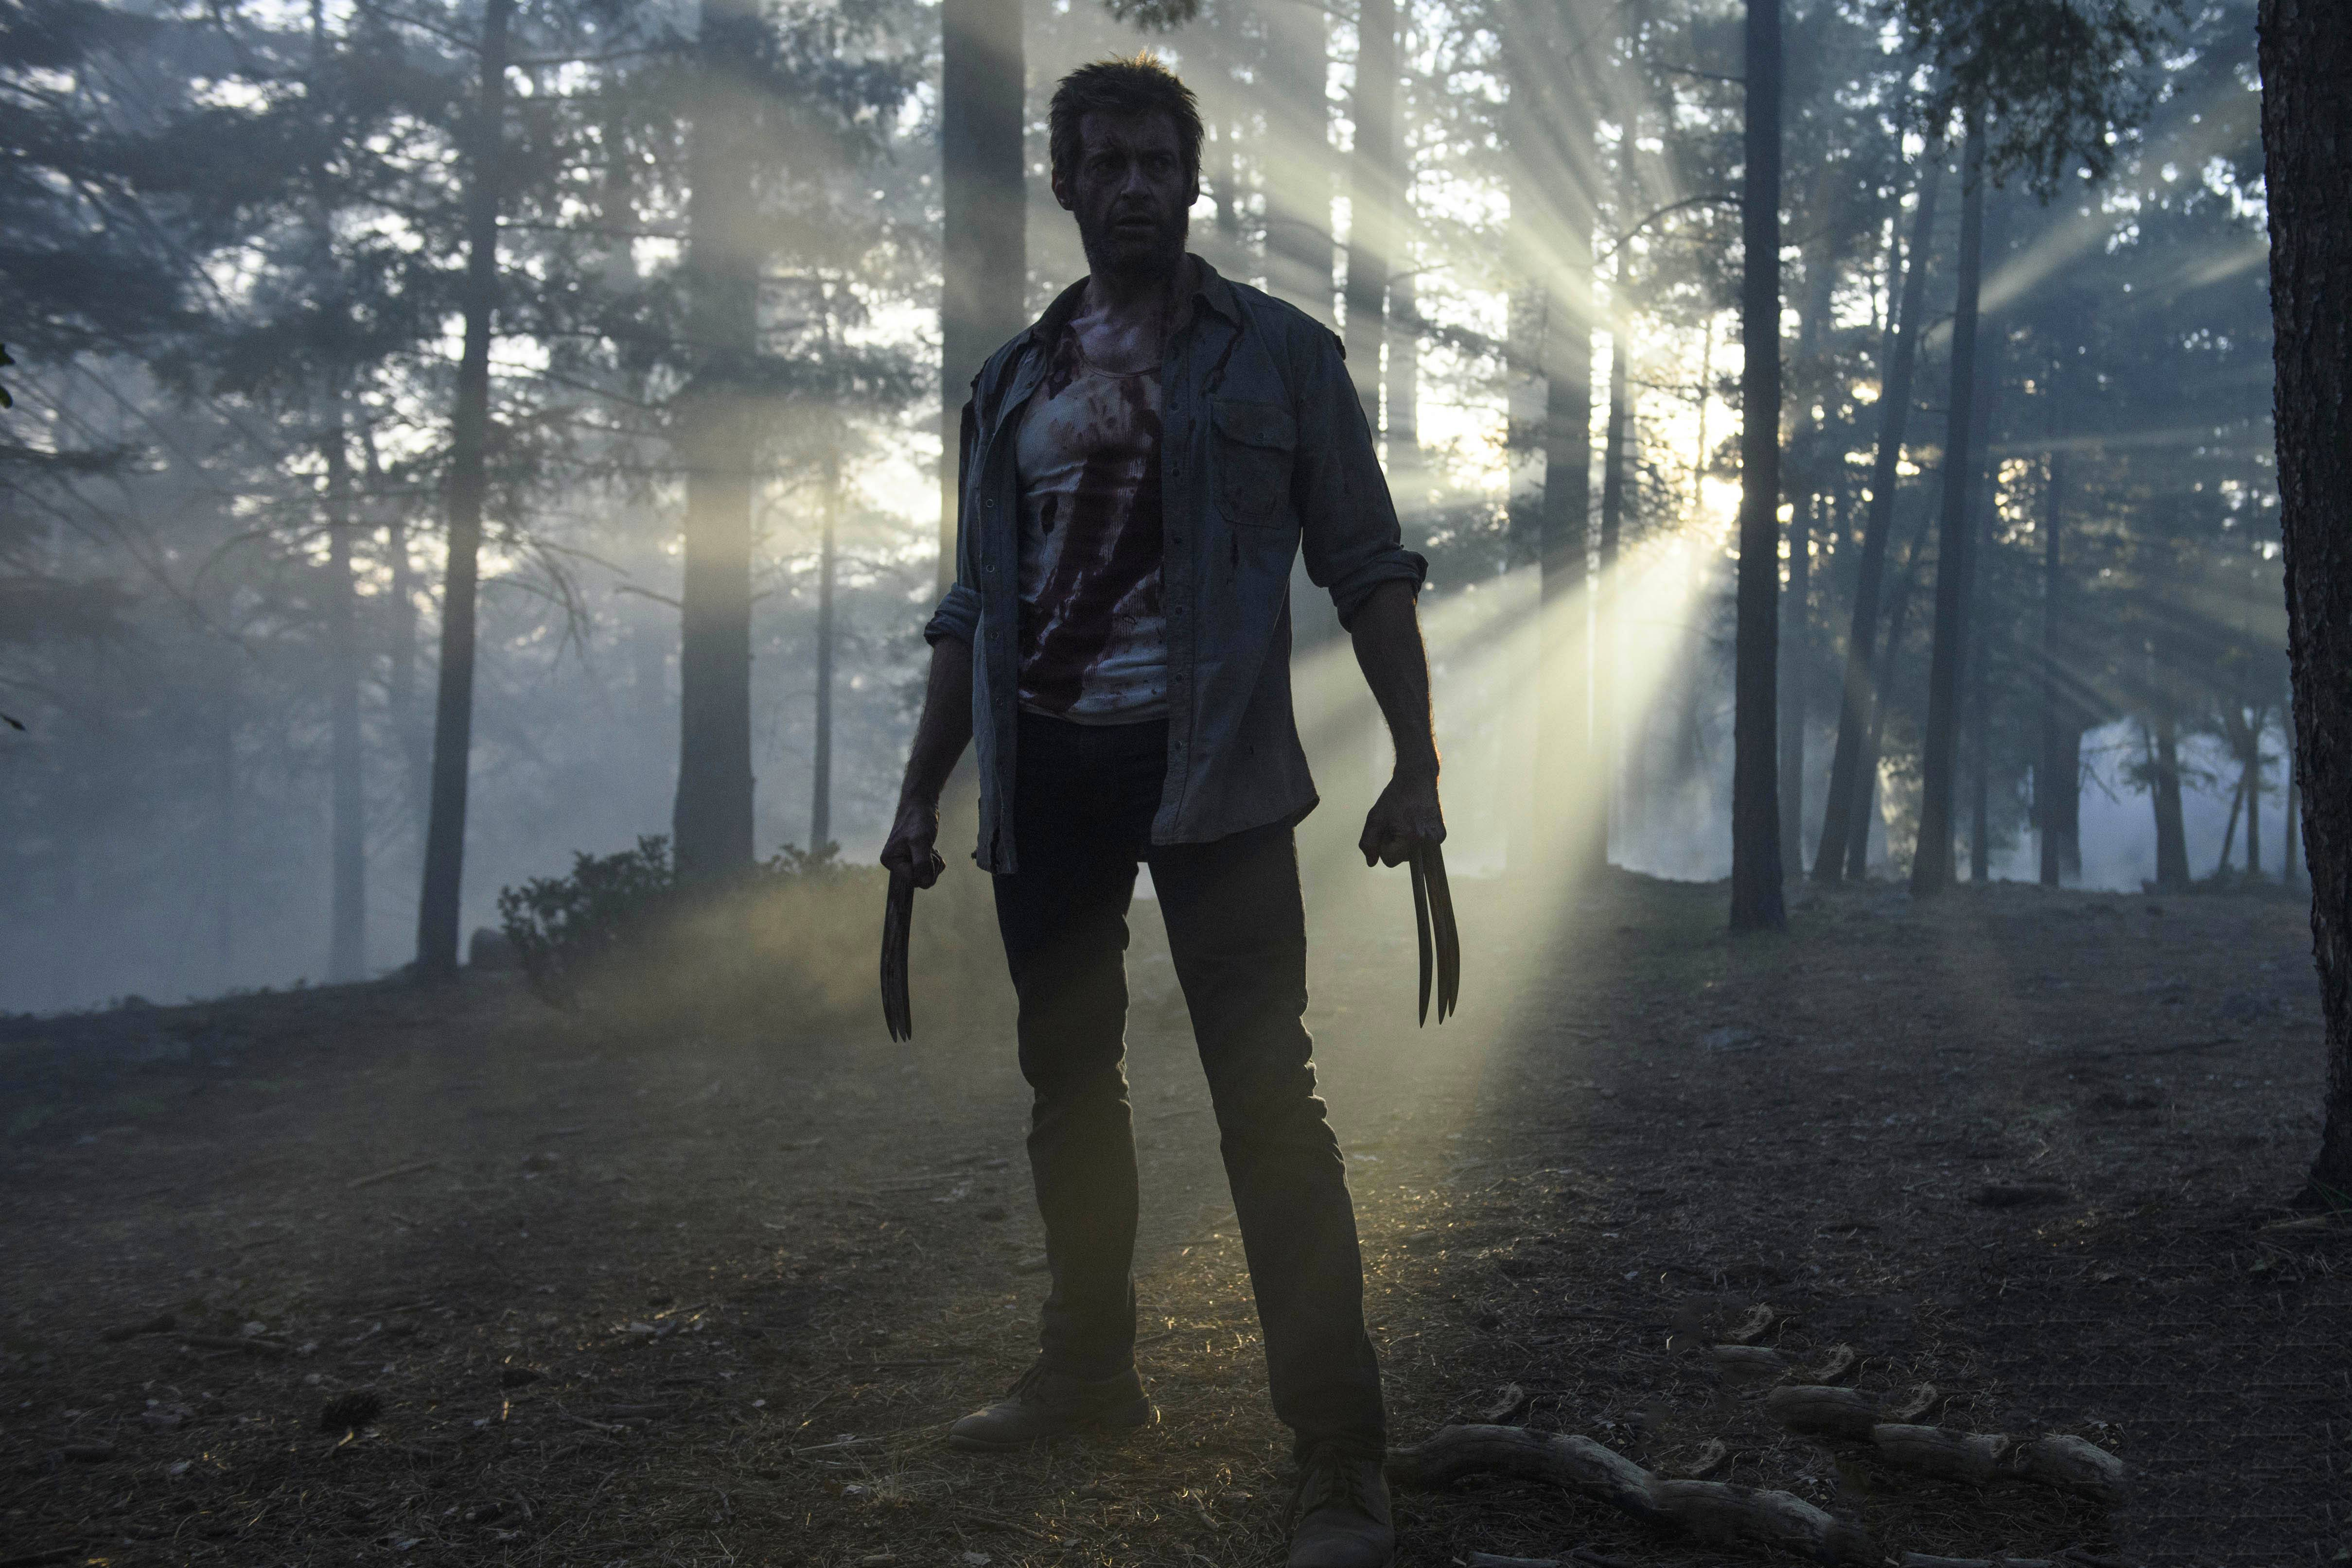 Hugh jackman as wolverine in logan hd movies 4k wallpapers images backgrounds photos and - Wallpaper wolverine 4k ...